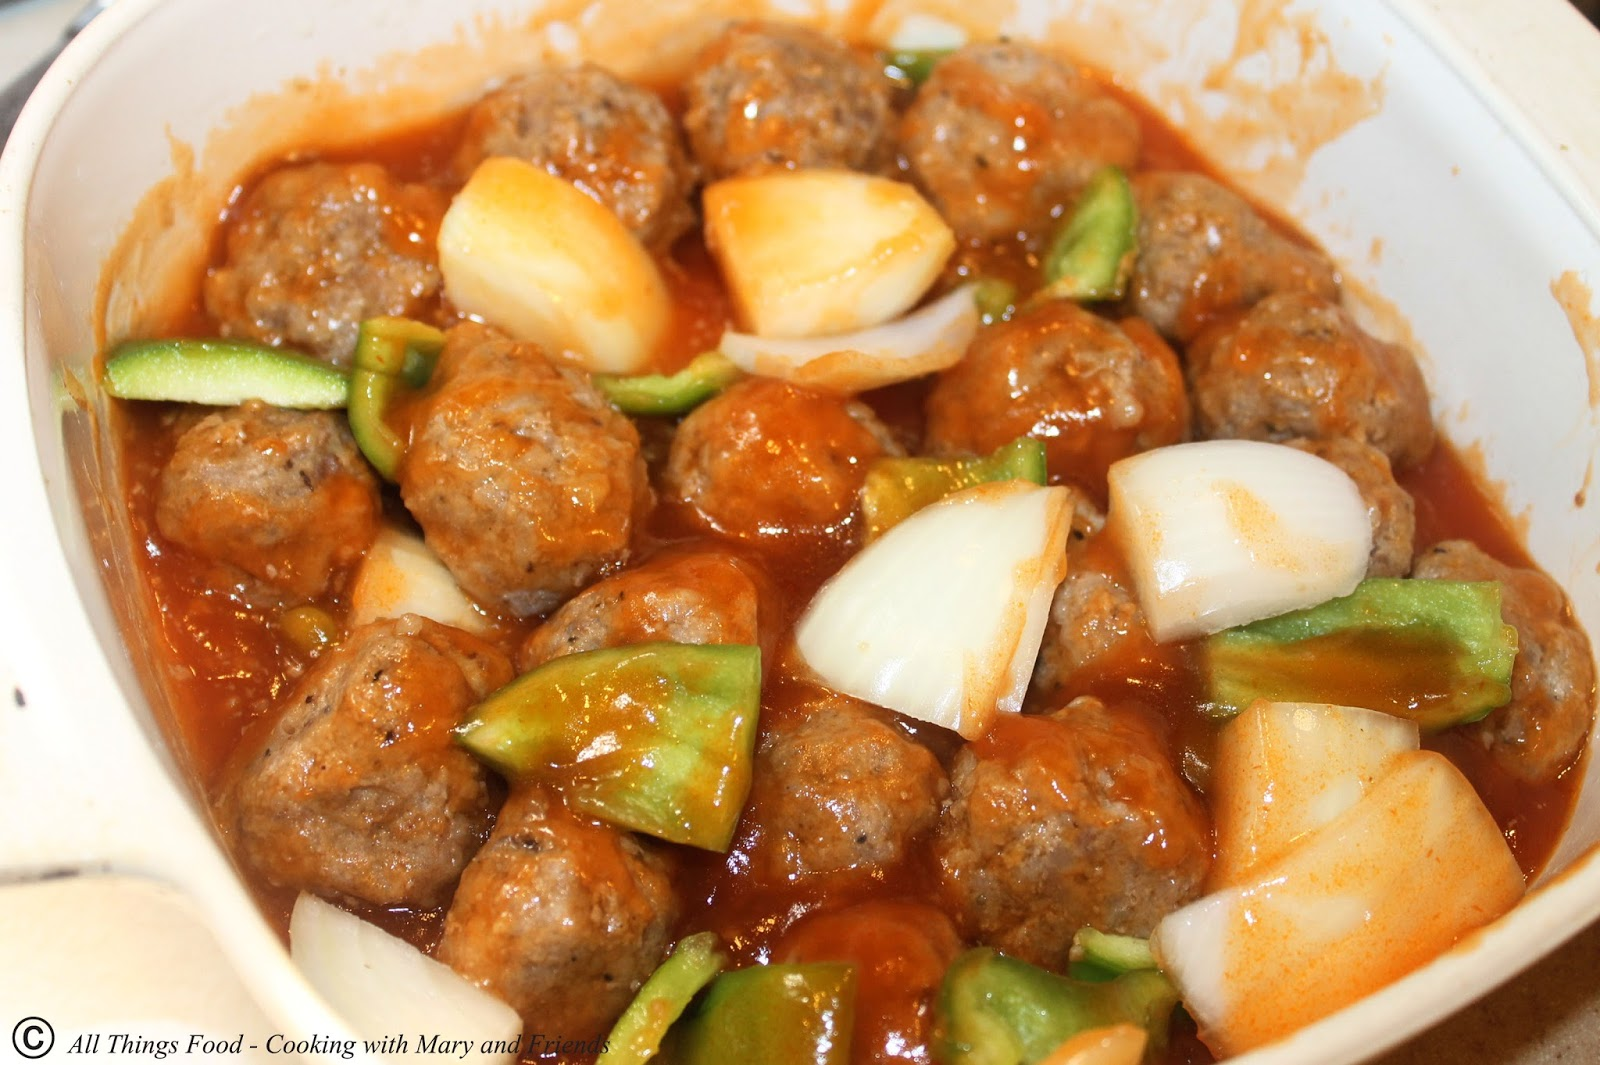 Cooking With Mary and Friends: Sweet and Sour Pork Meatballs